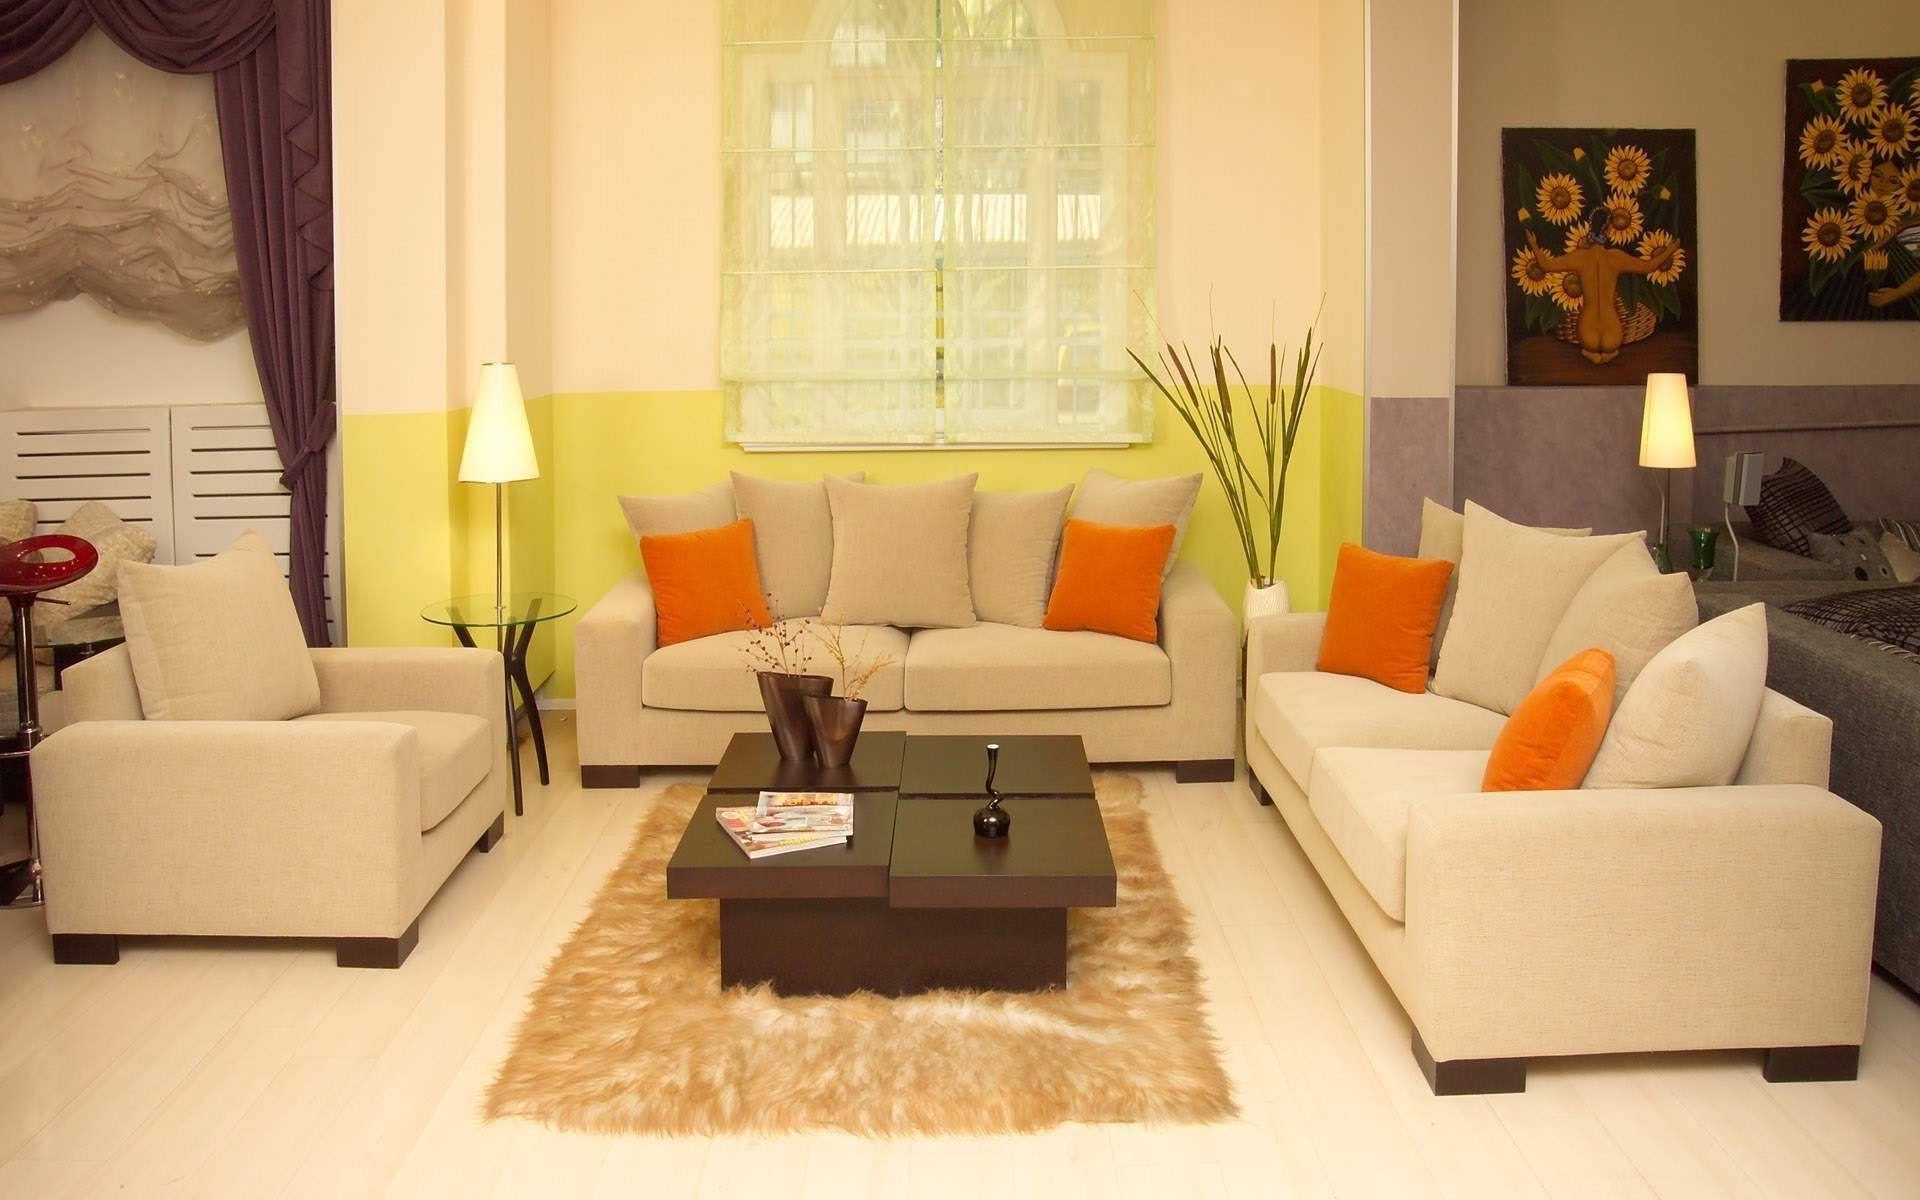 Cream Colored Sofas Intended For Popular Home Design : 12 Best Ideas Of Cream Colored Sofas Colored Sofa (View 8 of 20)